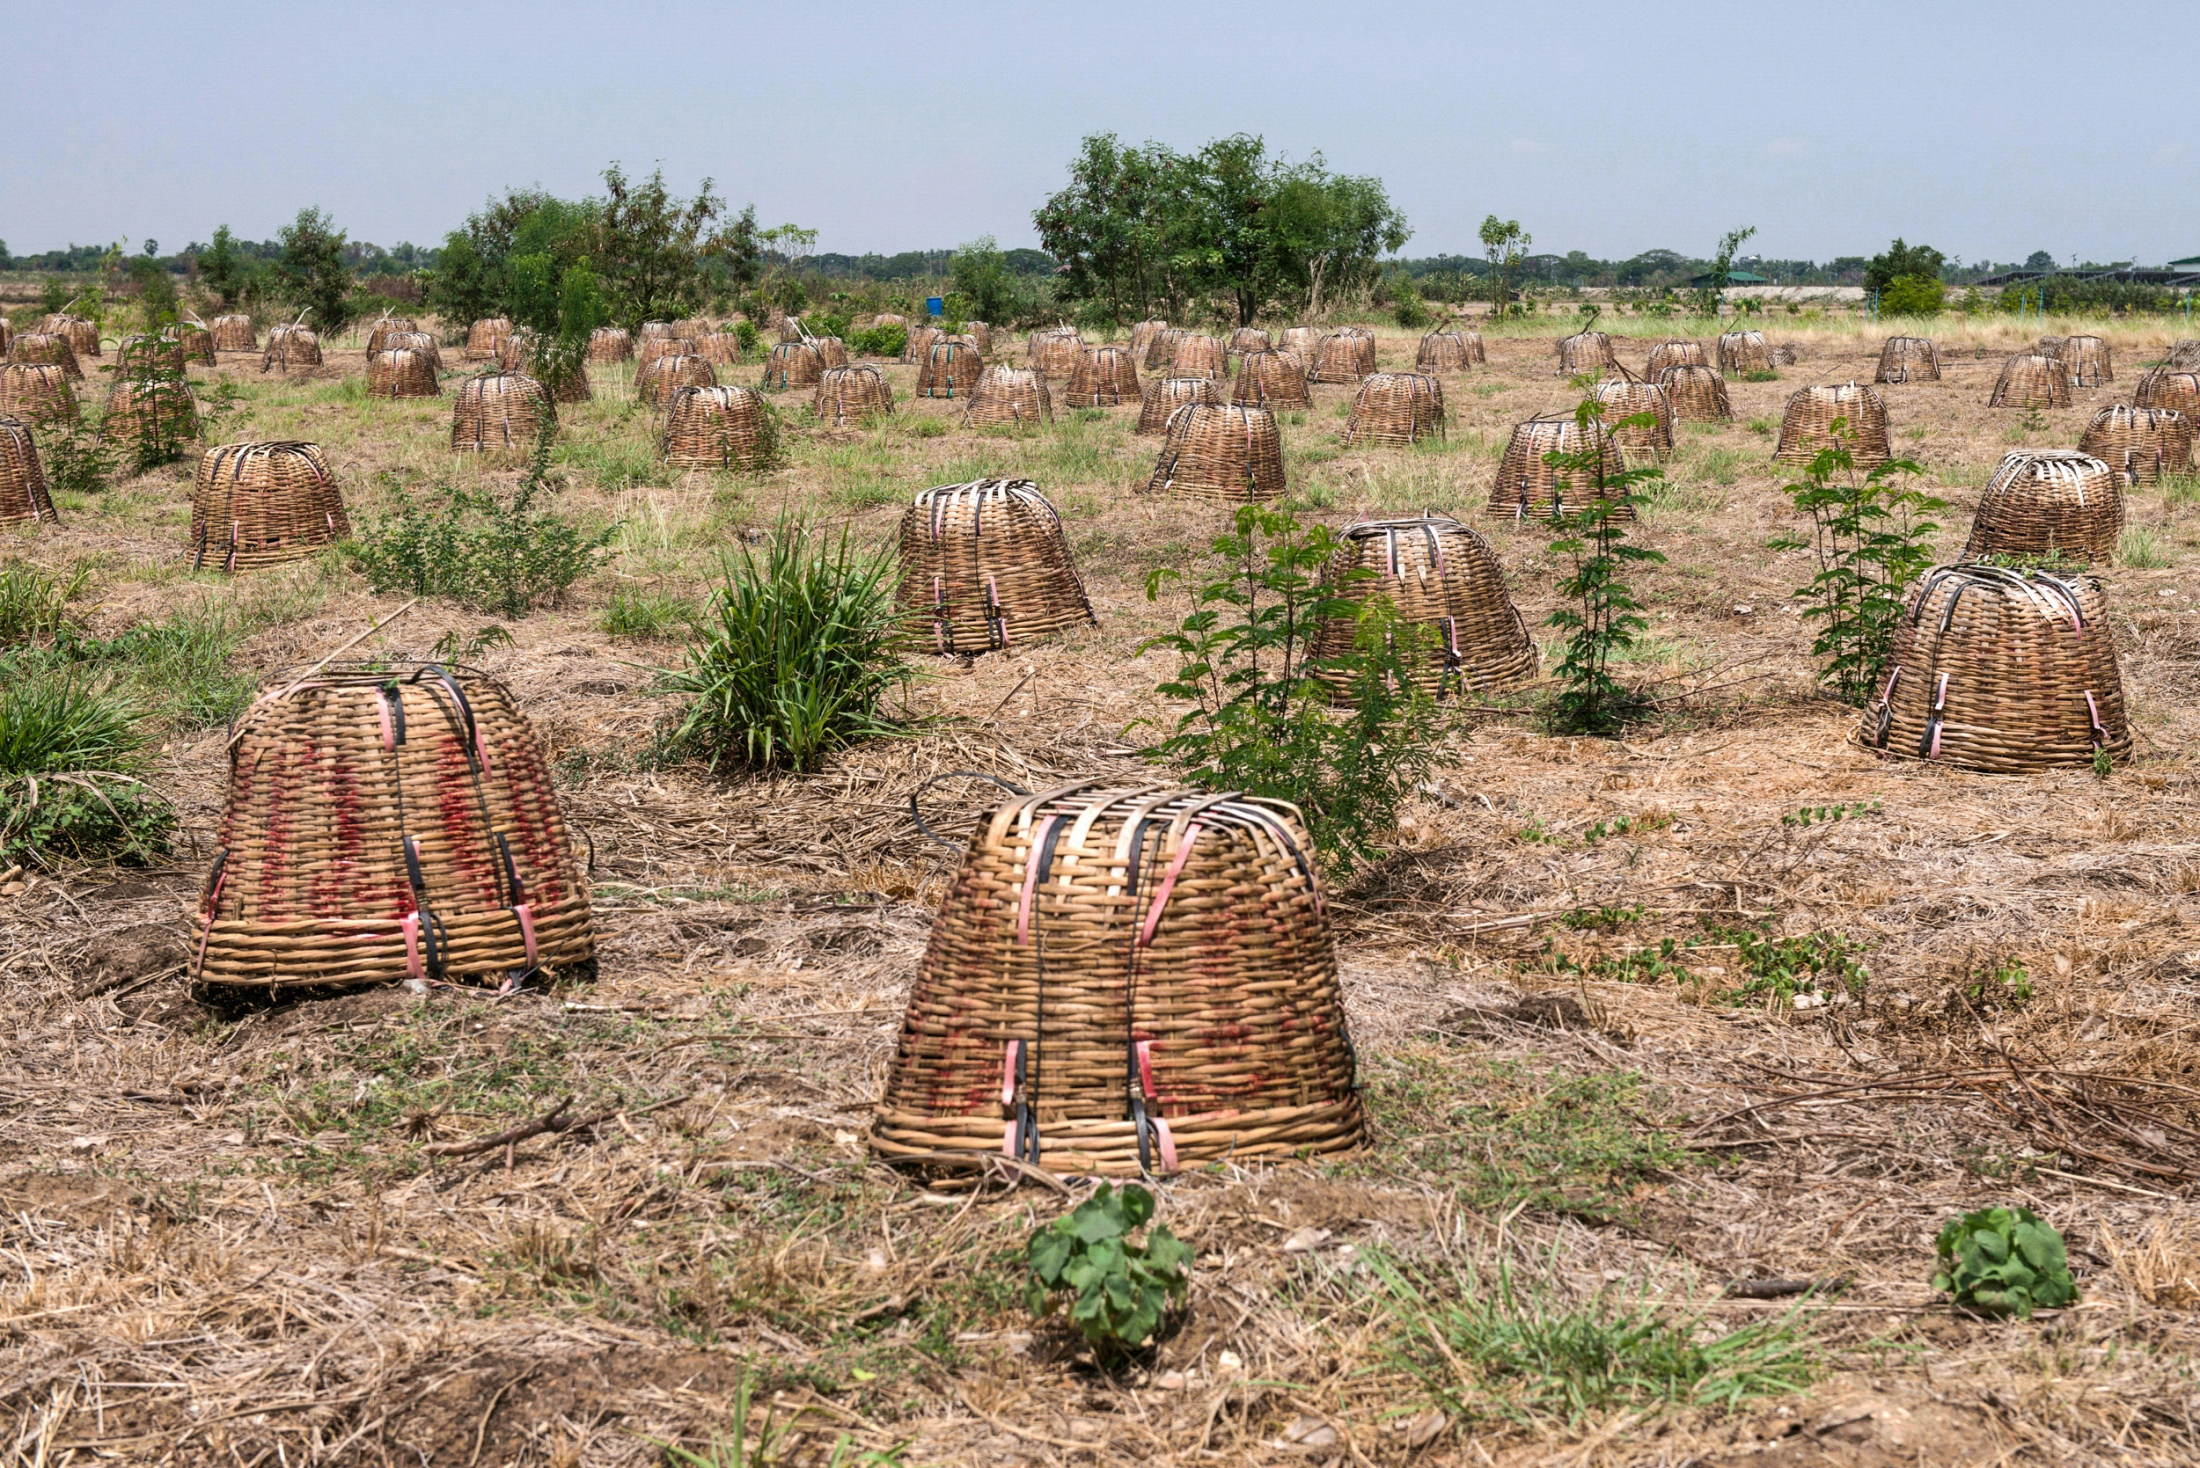 Ang Thong, Thailand. farmers use baskets to cover the Melientha suavis from strong direct sunlight during a period of heavy drought. Normally, the price of this vegetable is relatively high and brings a lucrative income to farmers. May 14, 2016.